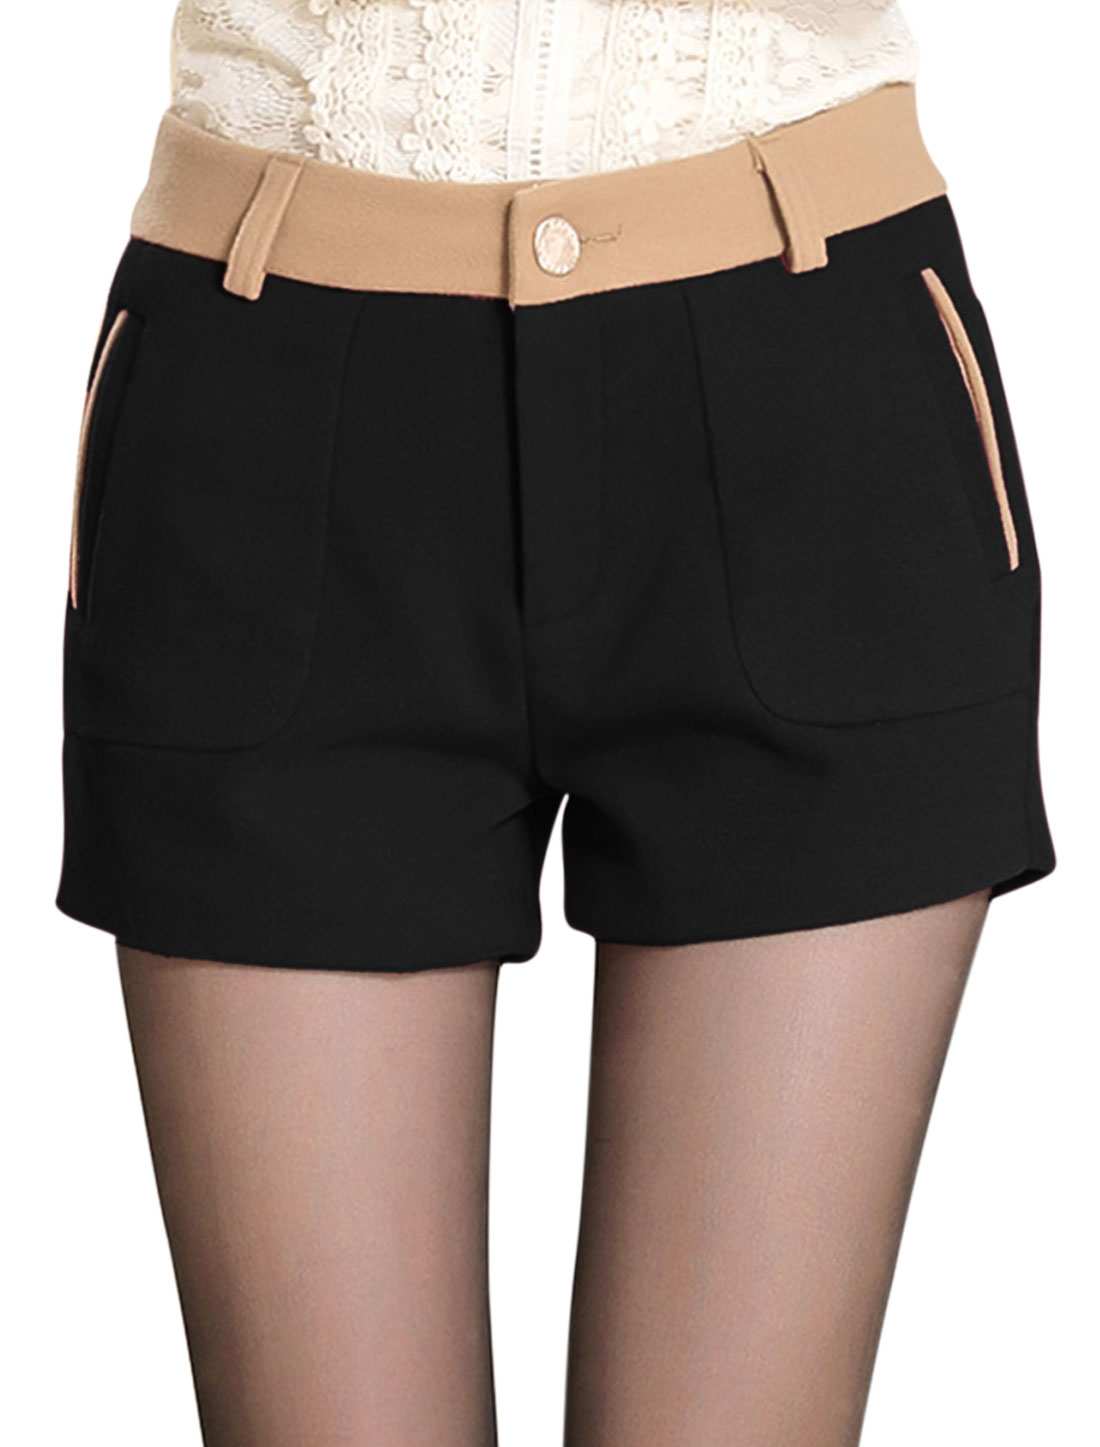 Lady Zip Fly Color Block Detail Fshion Casual Shorts Black M